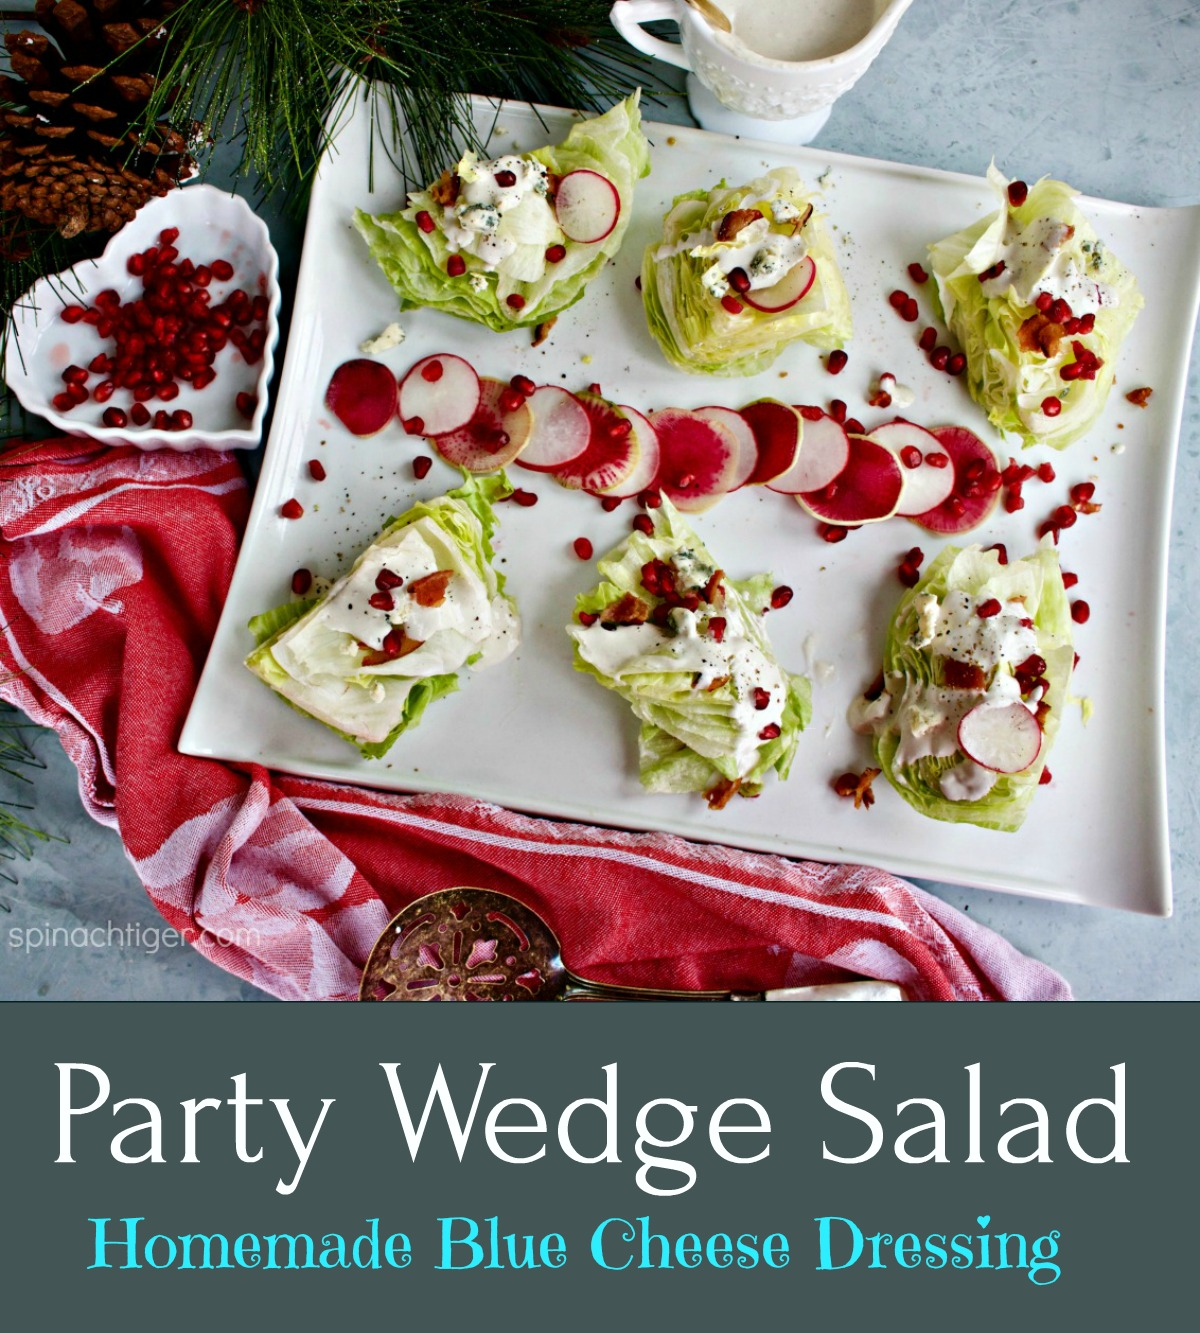 Party Wedge Salad with Homemade Blue Cheese Dressing from Spinach Tiger